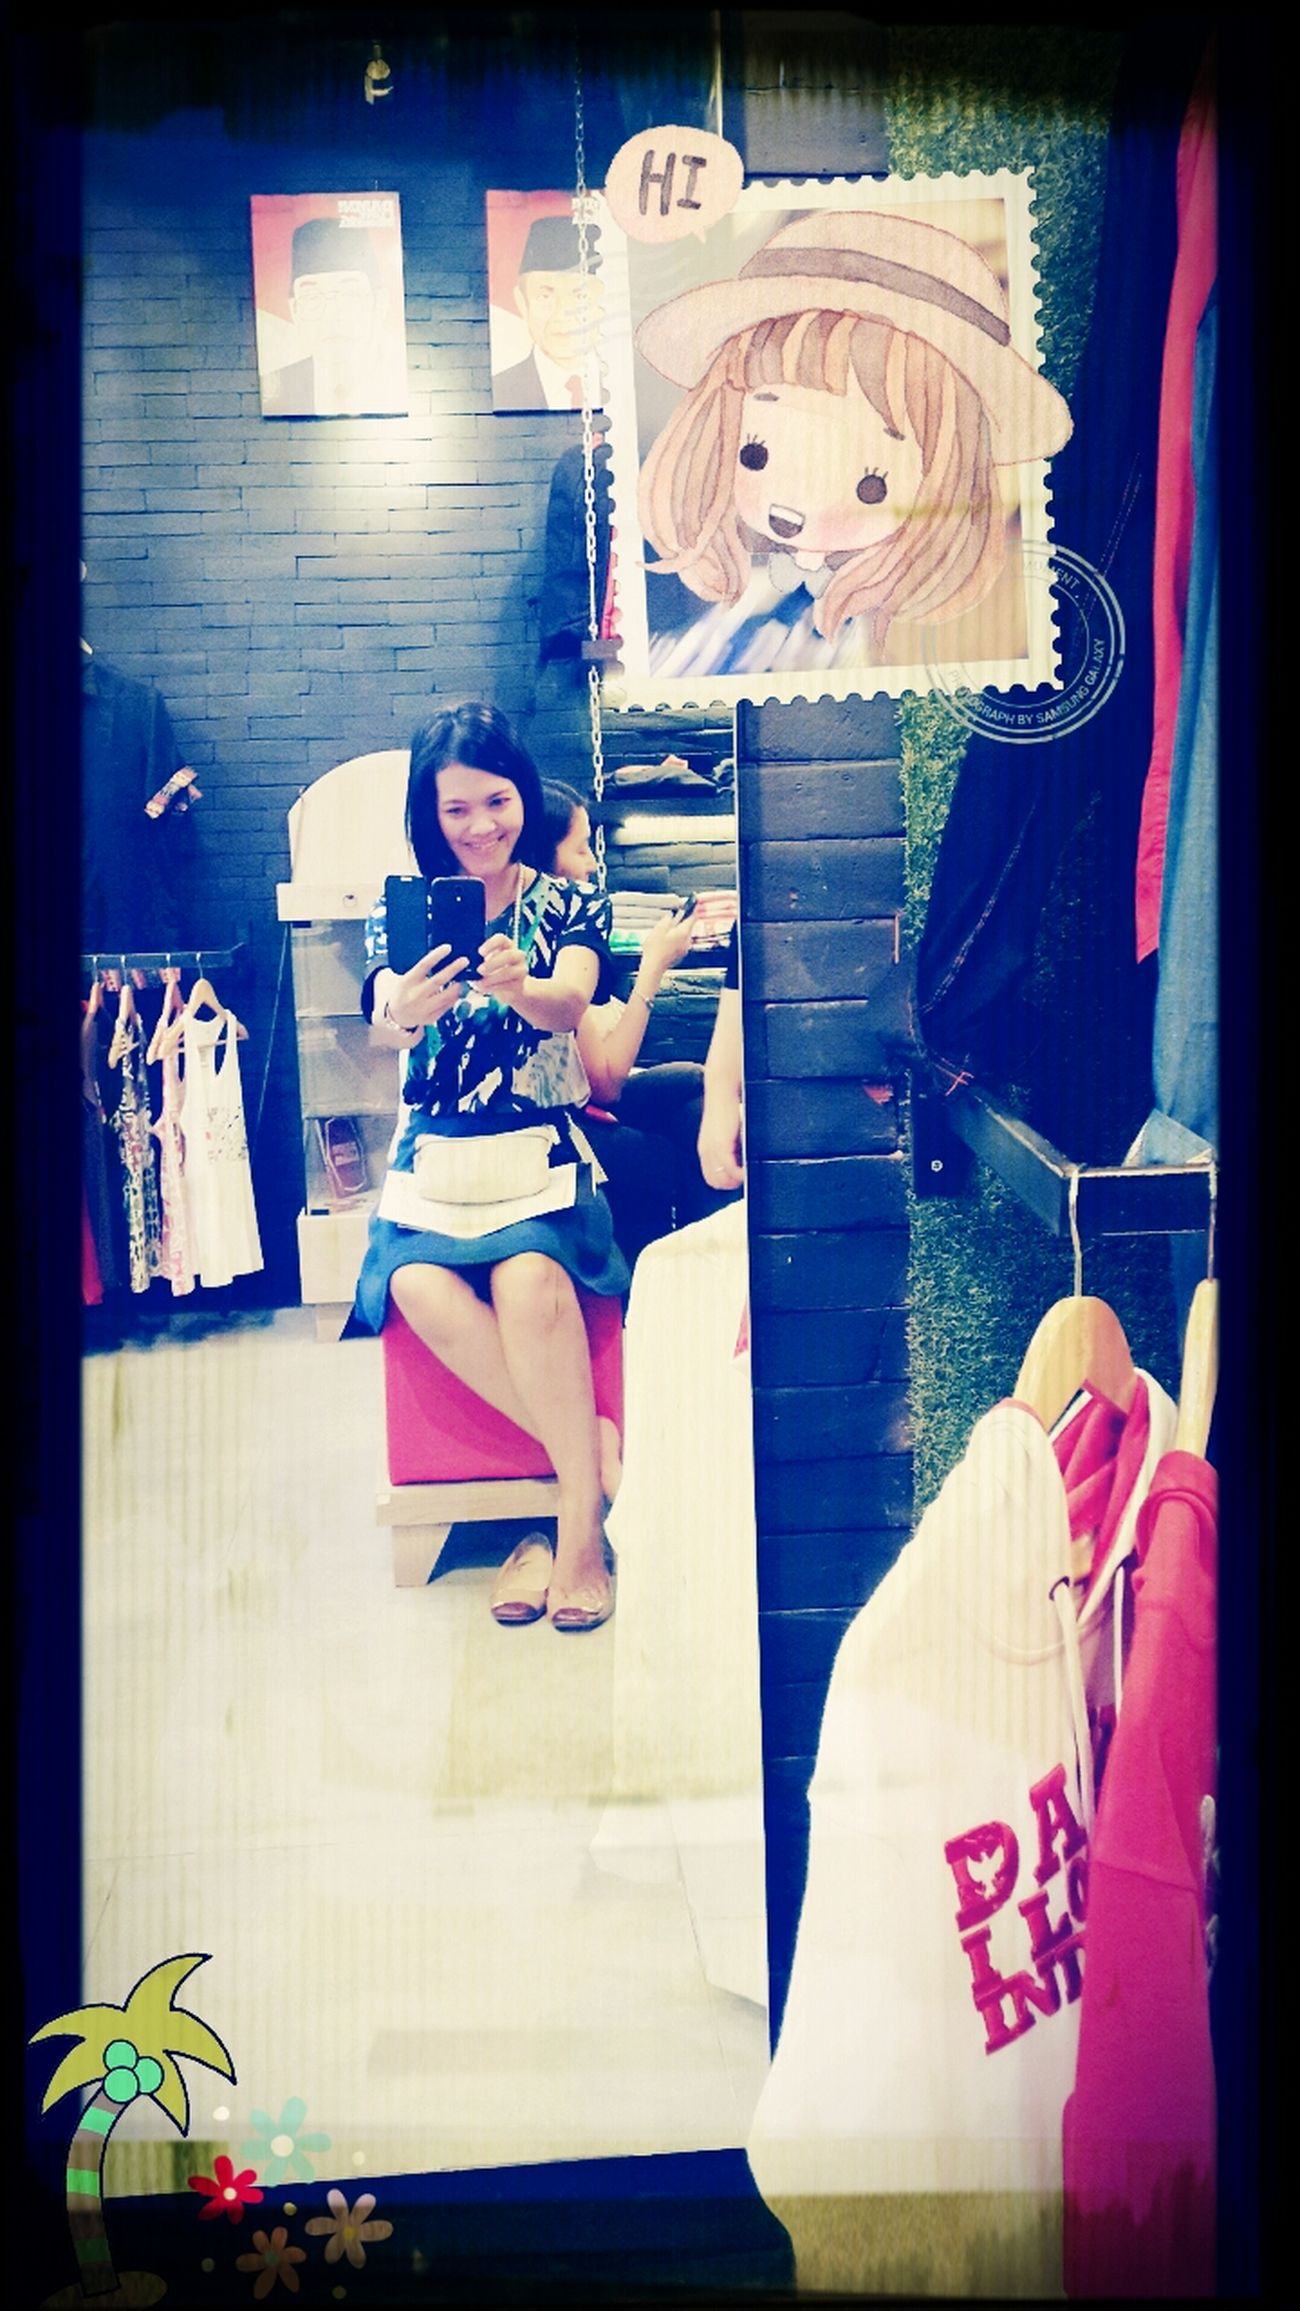 Me.. Women In Da'mirror Selfie ✌ At The Store Enjoying Life #hii..